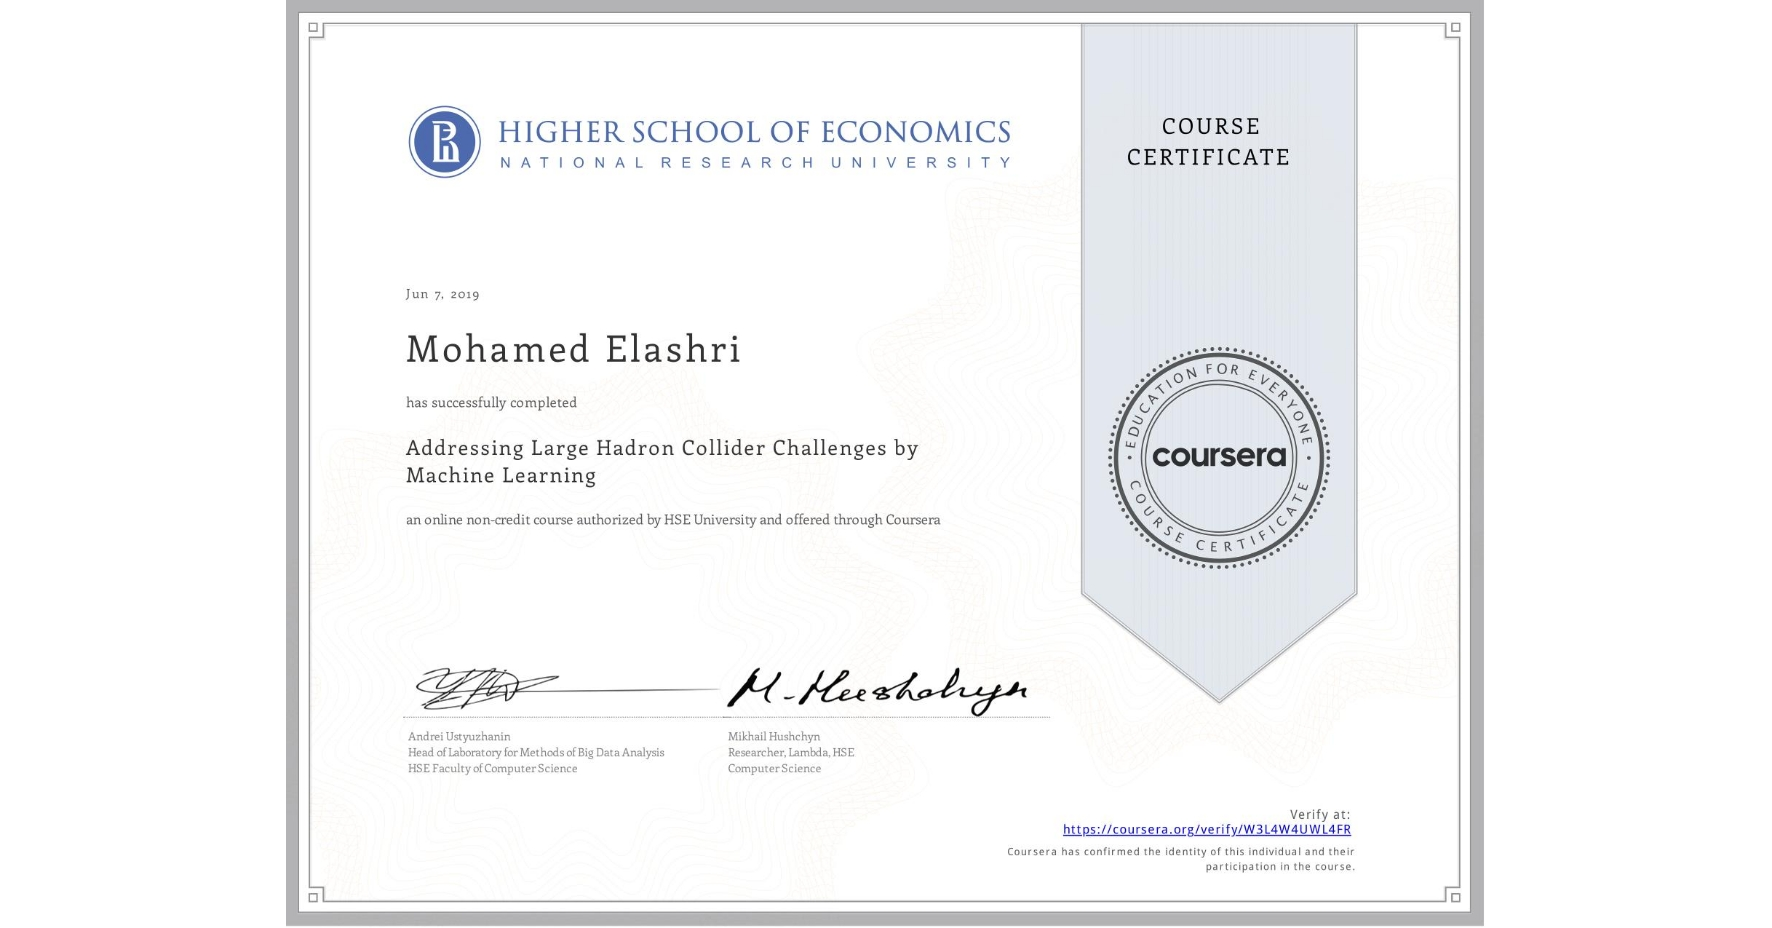 View certificate for Mohamed Elashri, Addressing Large Hadron Collider Challenges by Machine Learning, an online non-credit course authorized by National Research University Higher School of Economics and offered through Coursera